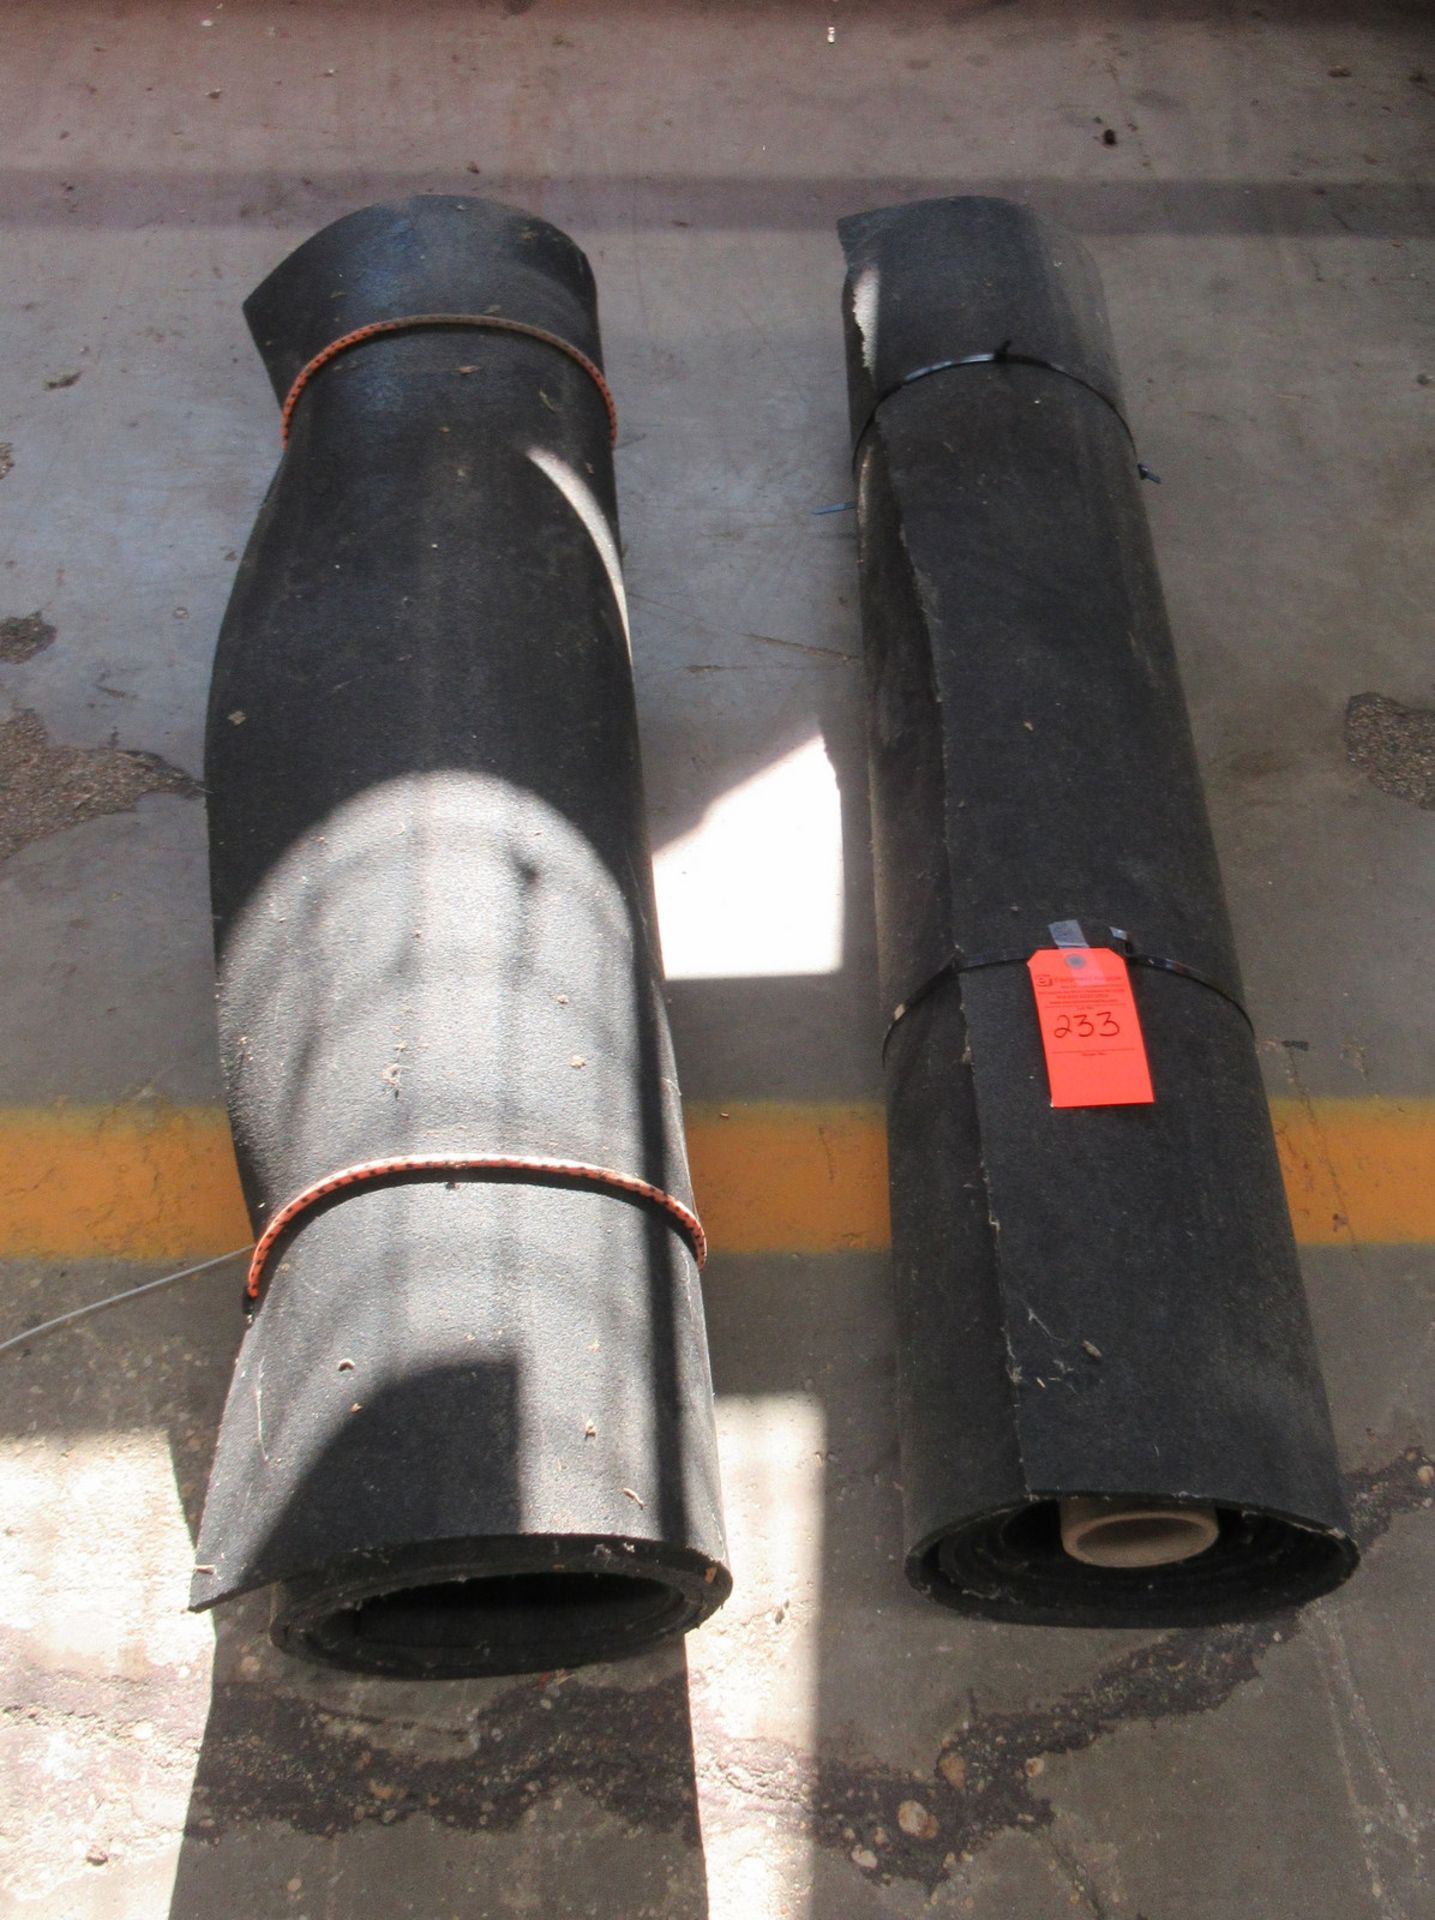 Lot 233 - Lot of 2 Floor Mats